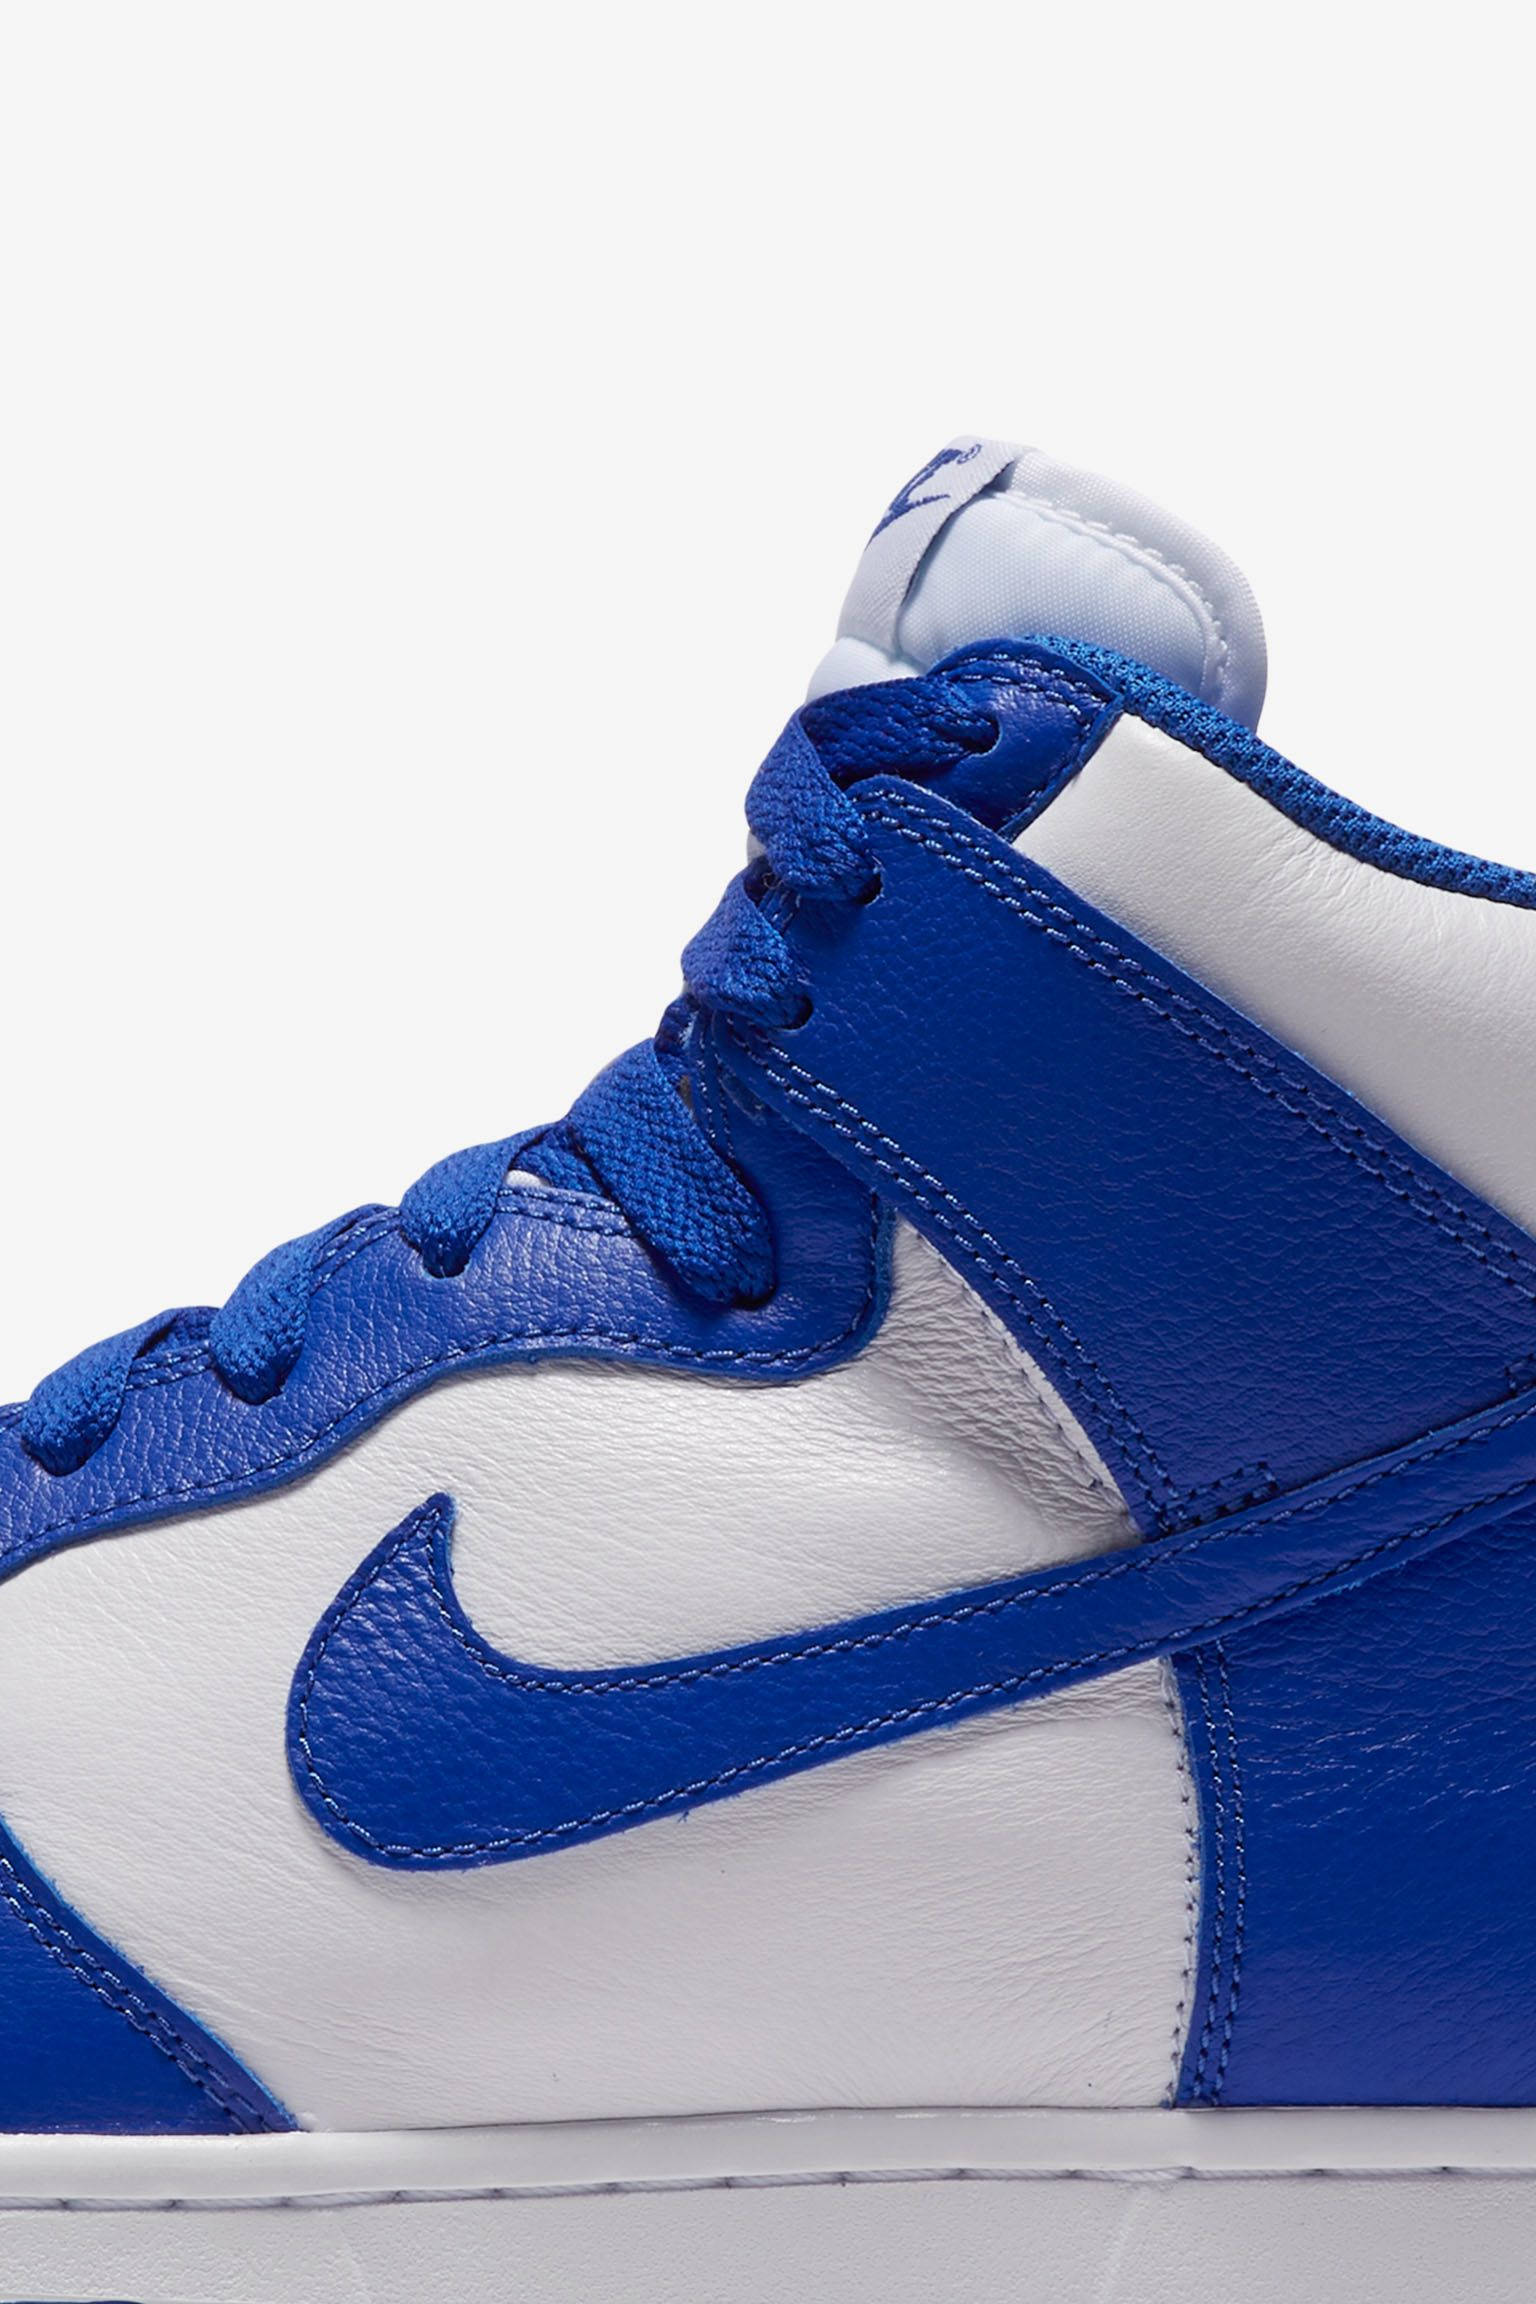 Nike Dunk College Colors 'Blue & White'